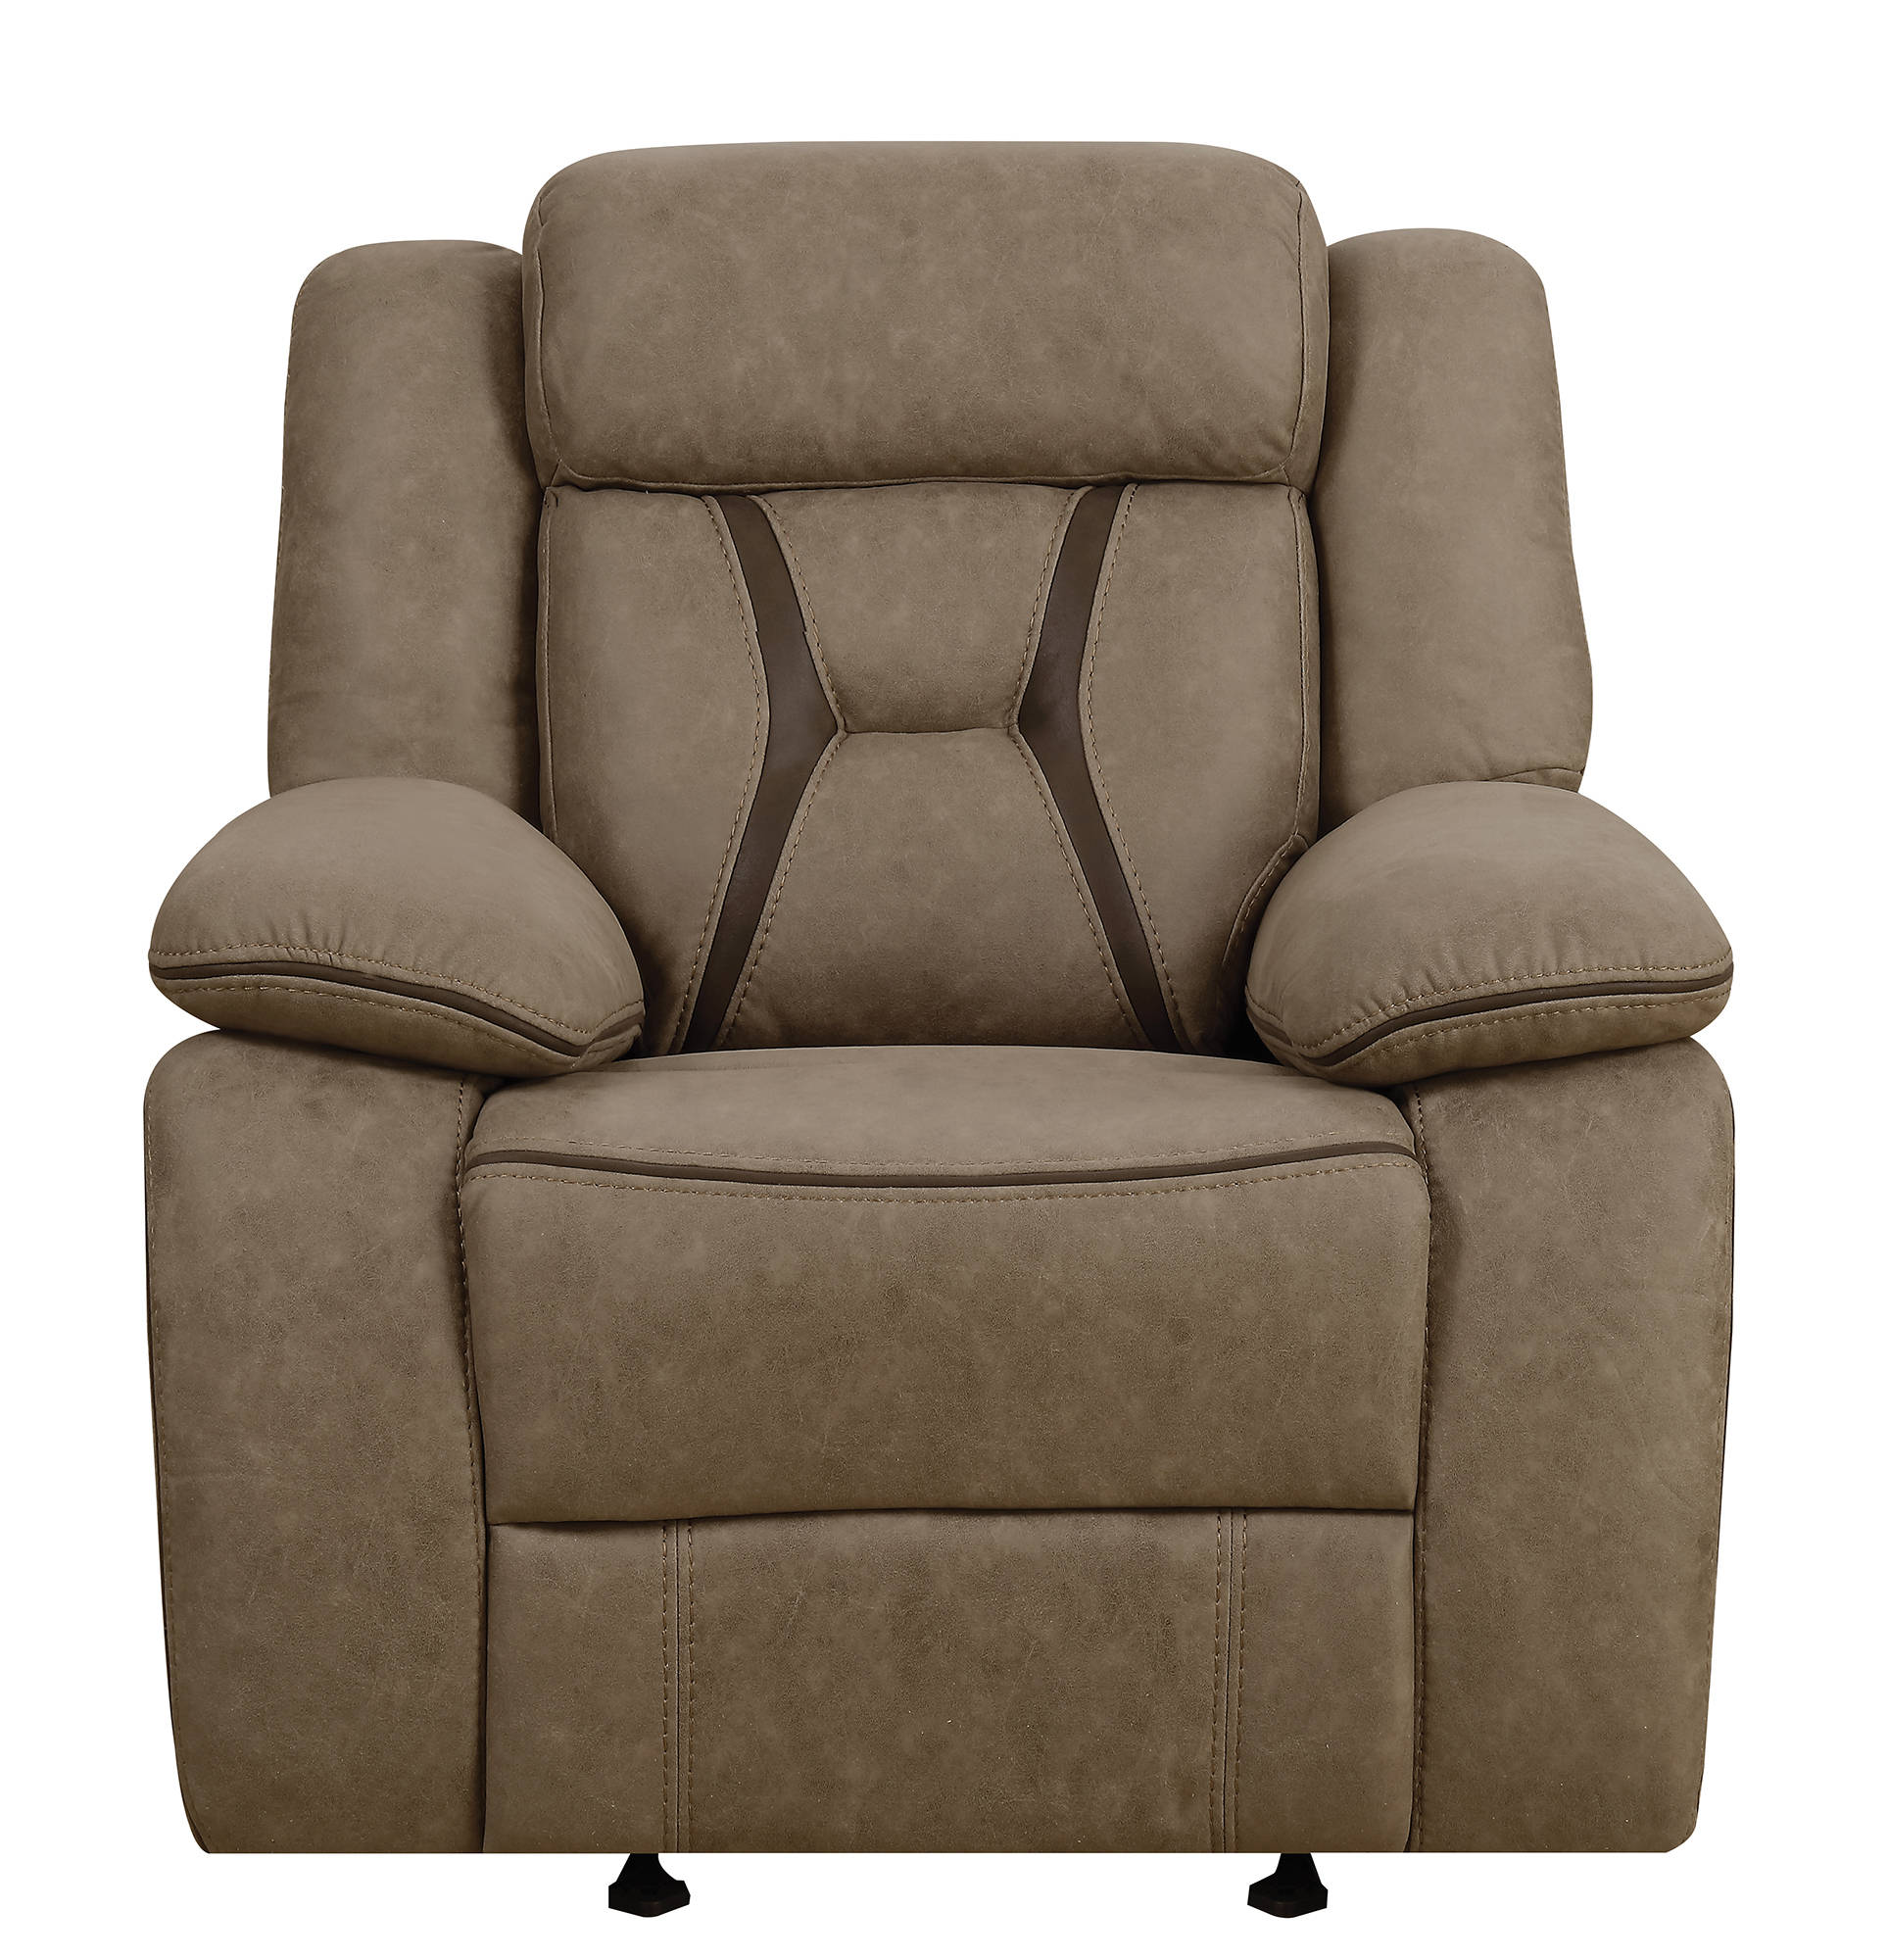 Superbe Coaster Furniture Houston Tan Glider Recliner Click To Enlarge ...